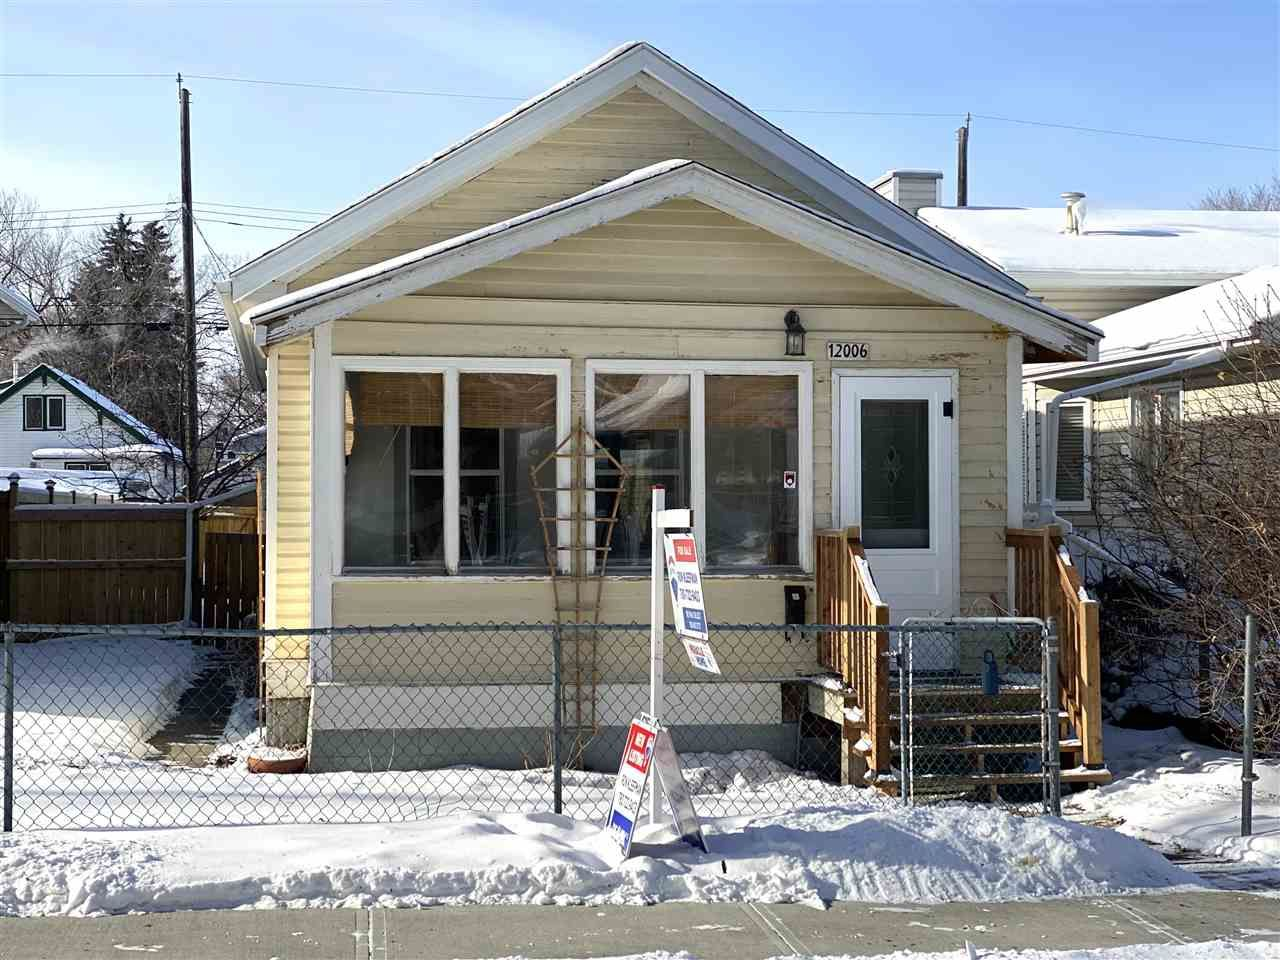 Main Photo: 12006 63 Street in Edmonton: Zone 06 House for sale : MLS®# E4226668